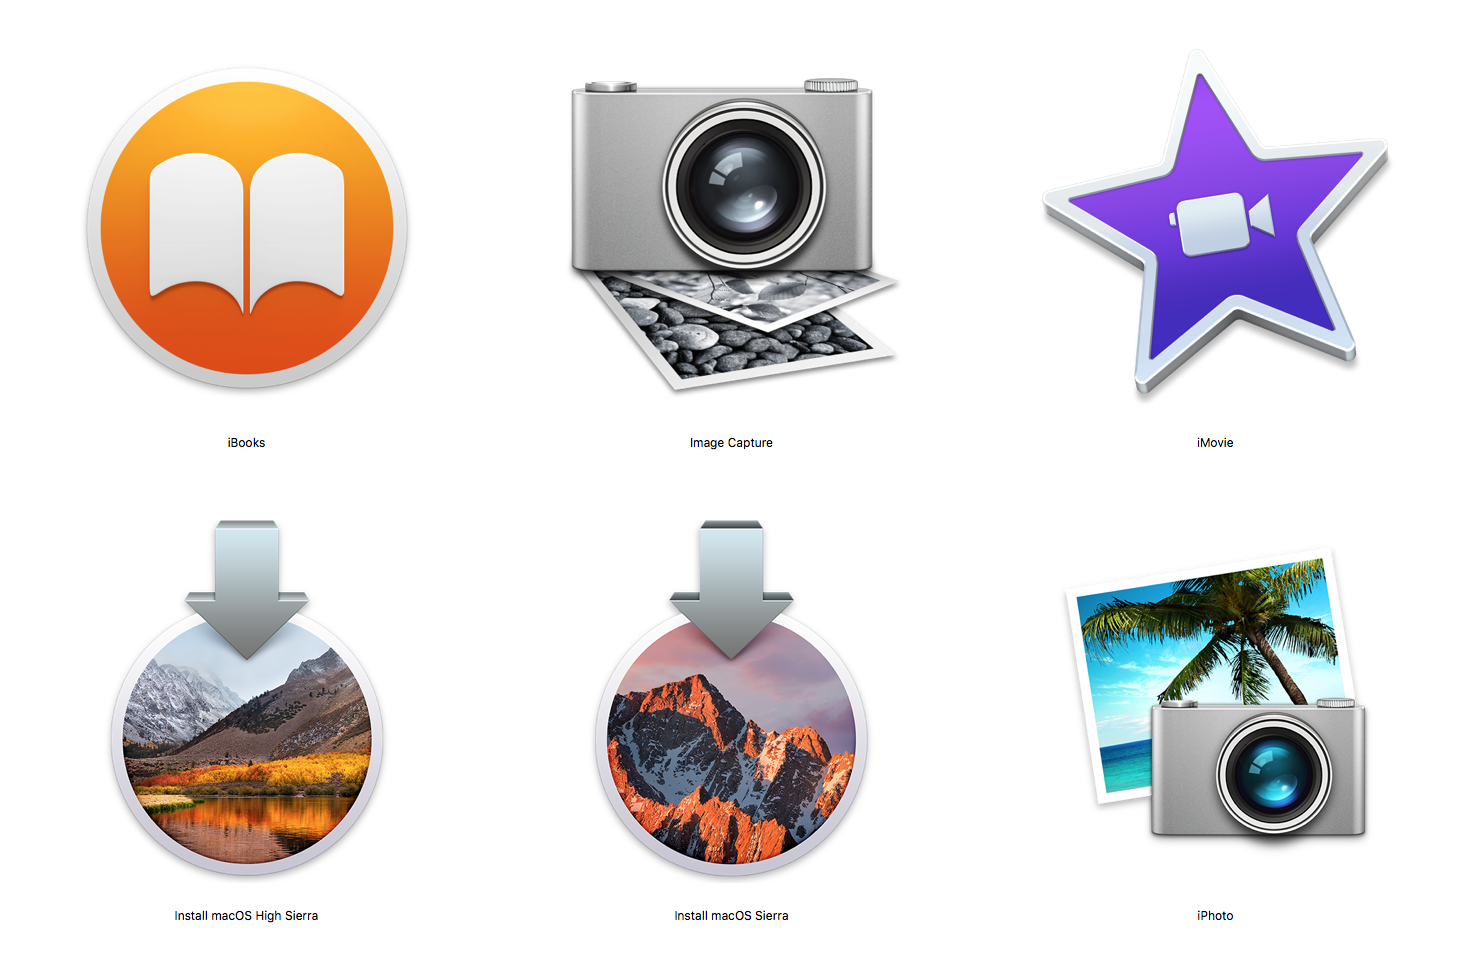 Install files for macOS